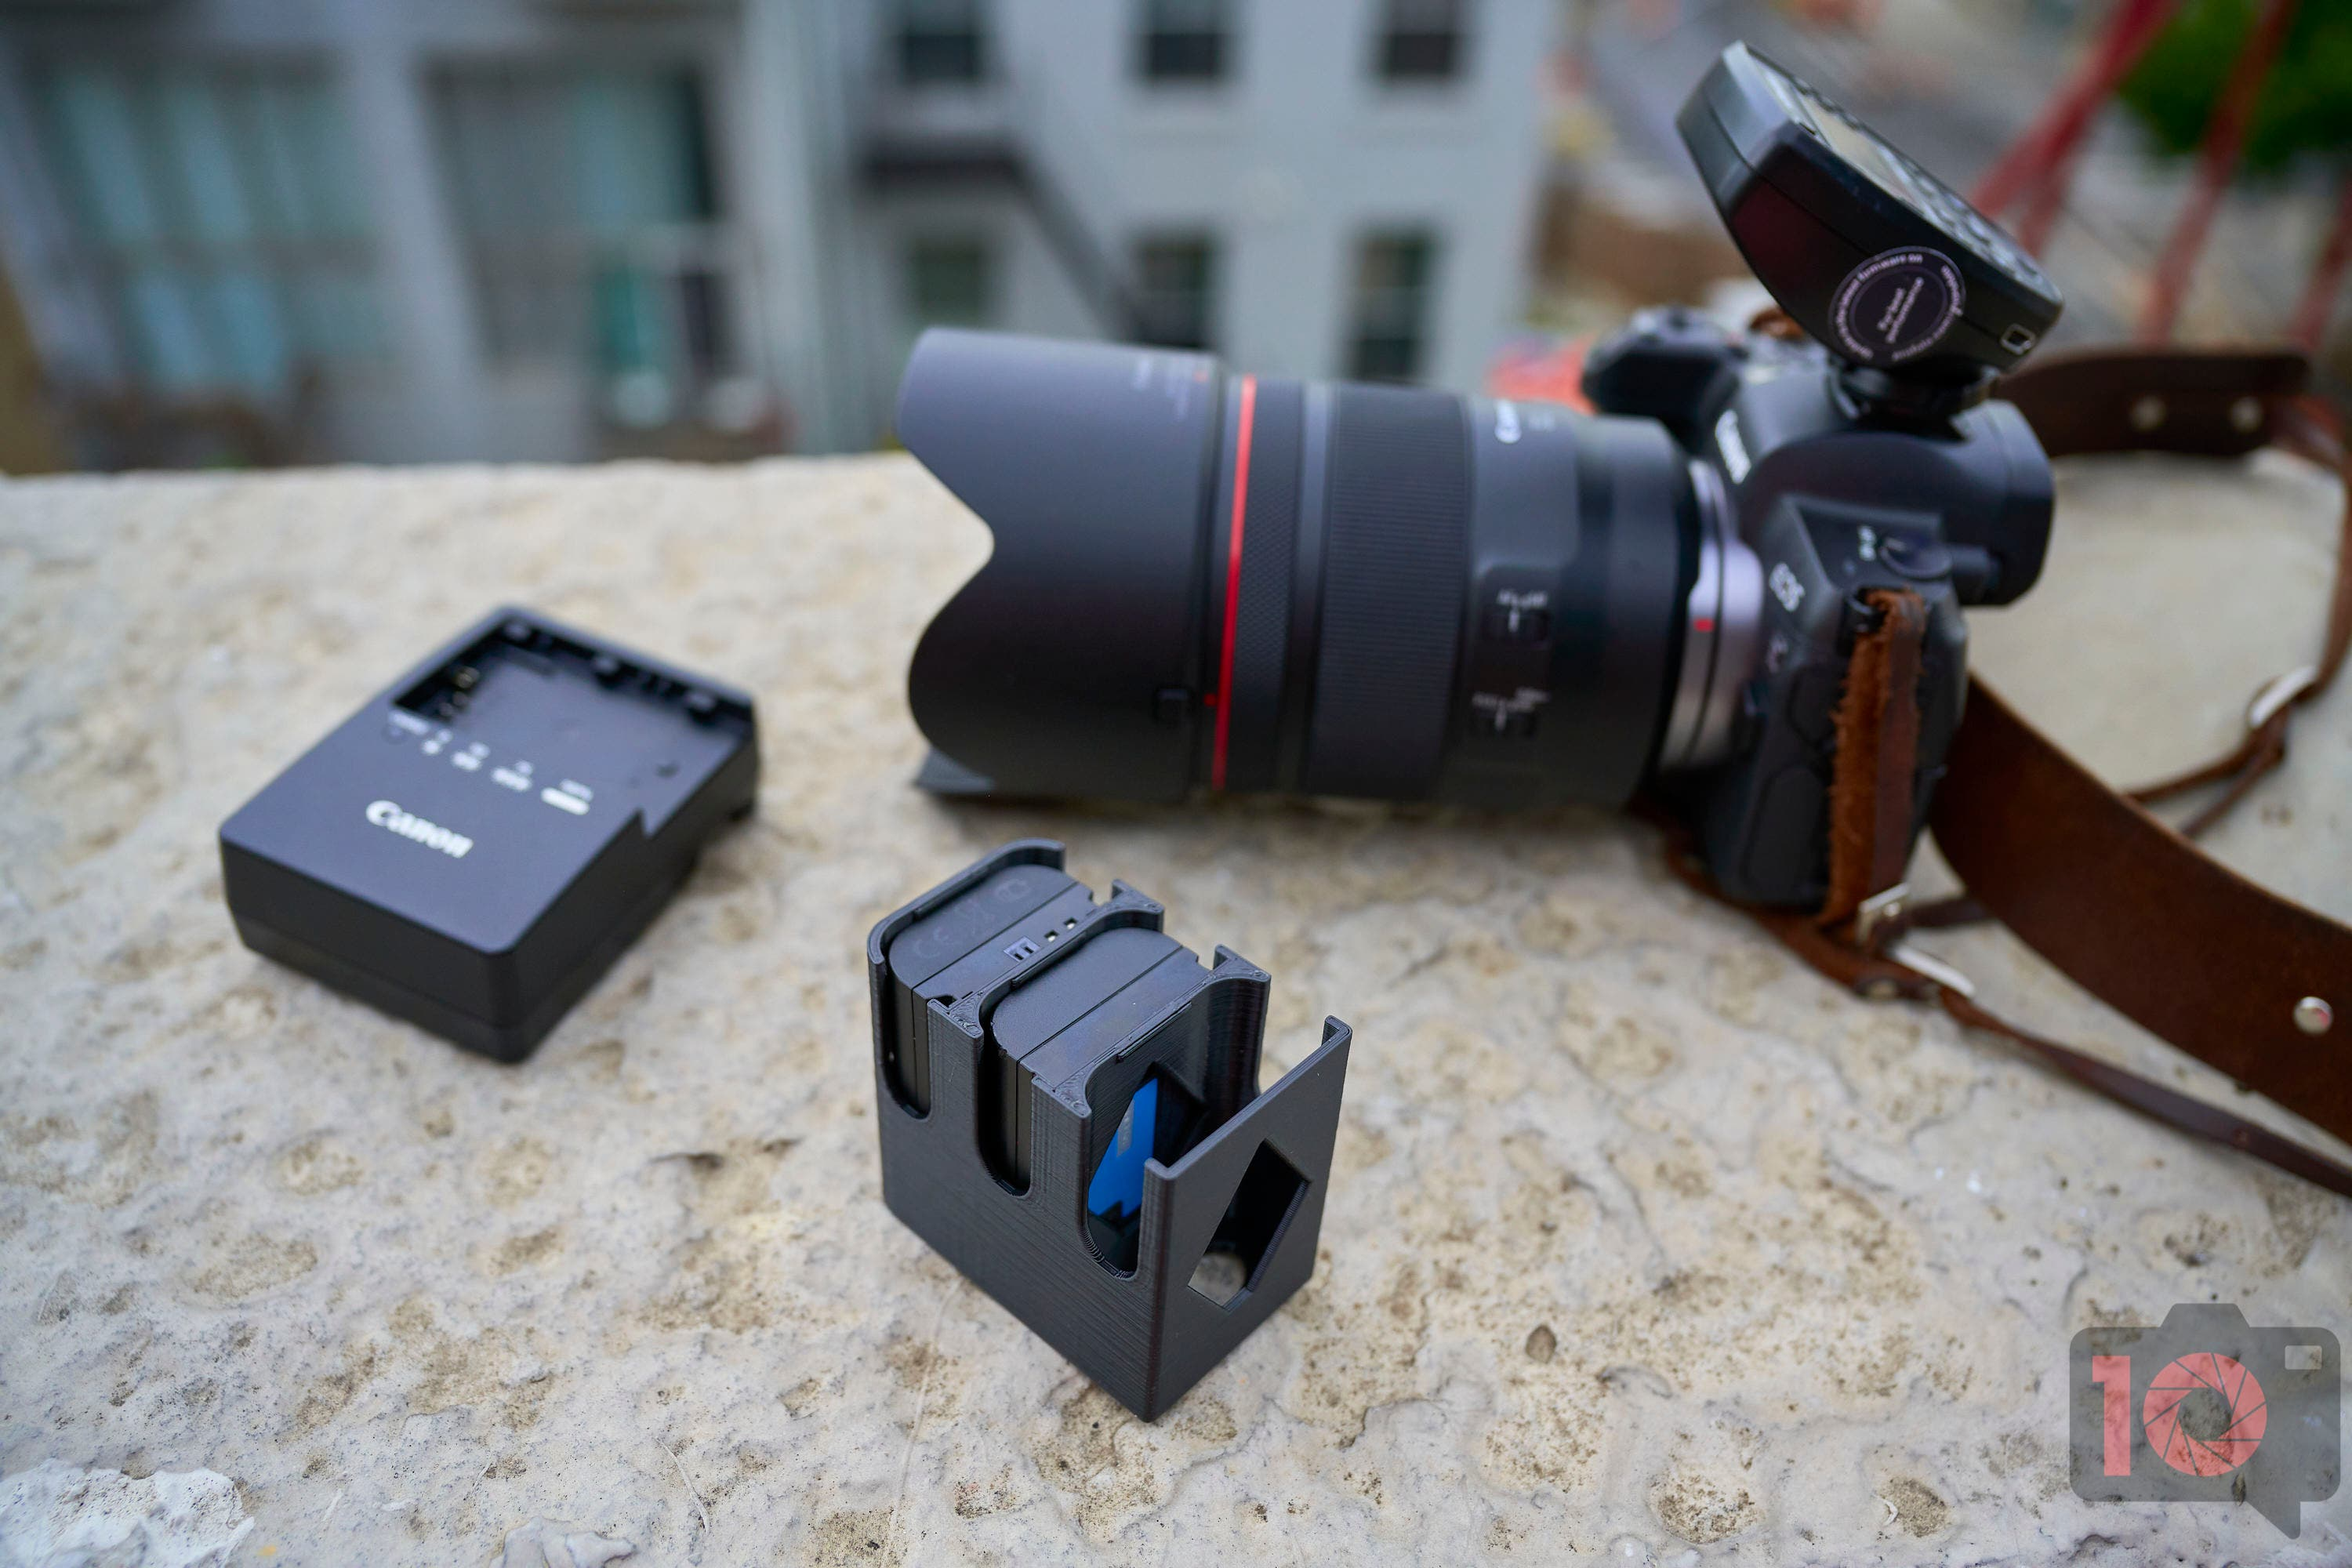 The Battery Mags Organize Camera Batteries in the Space of a Small Lens